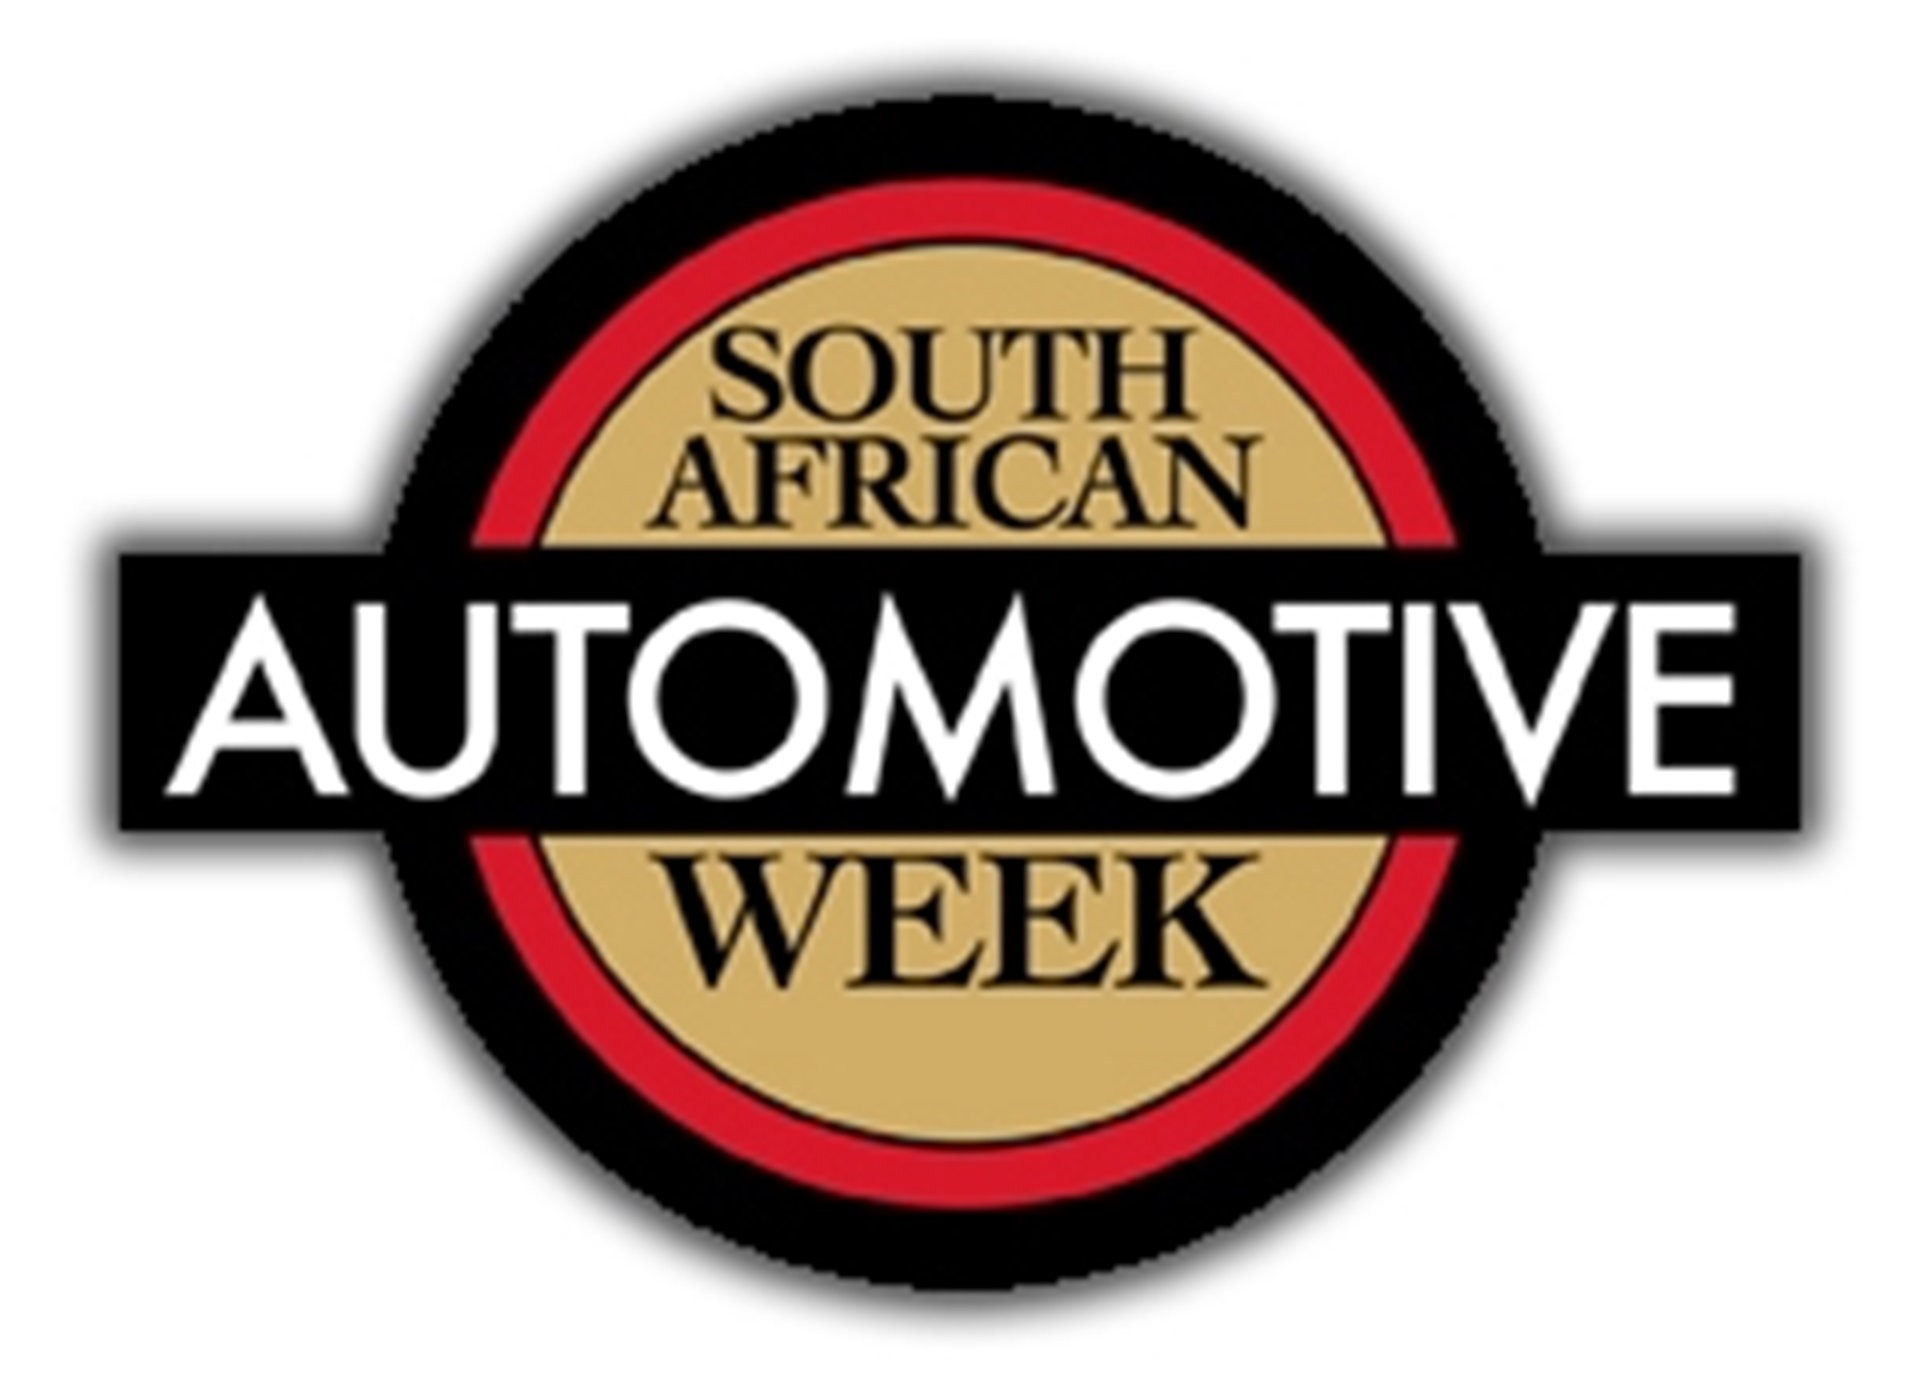 South Africa Automotive Week